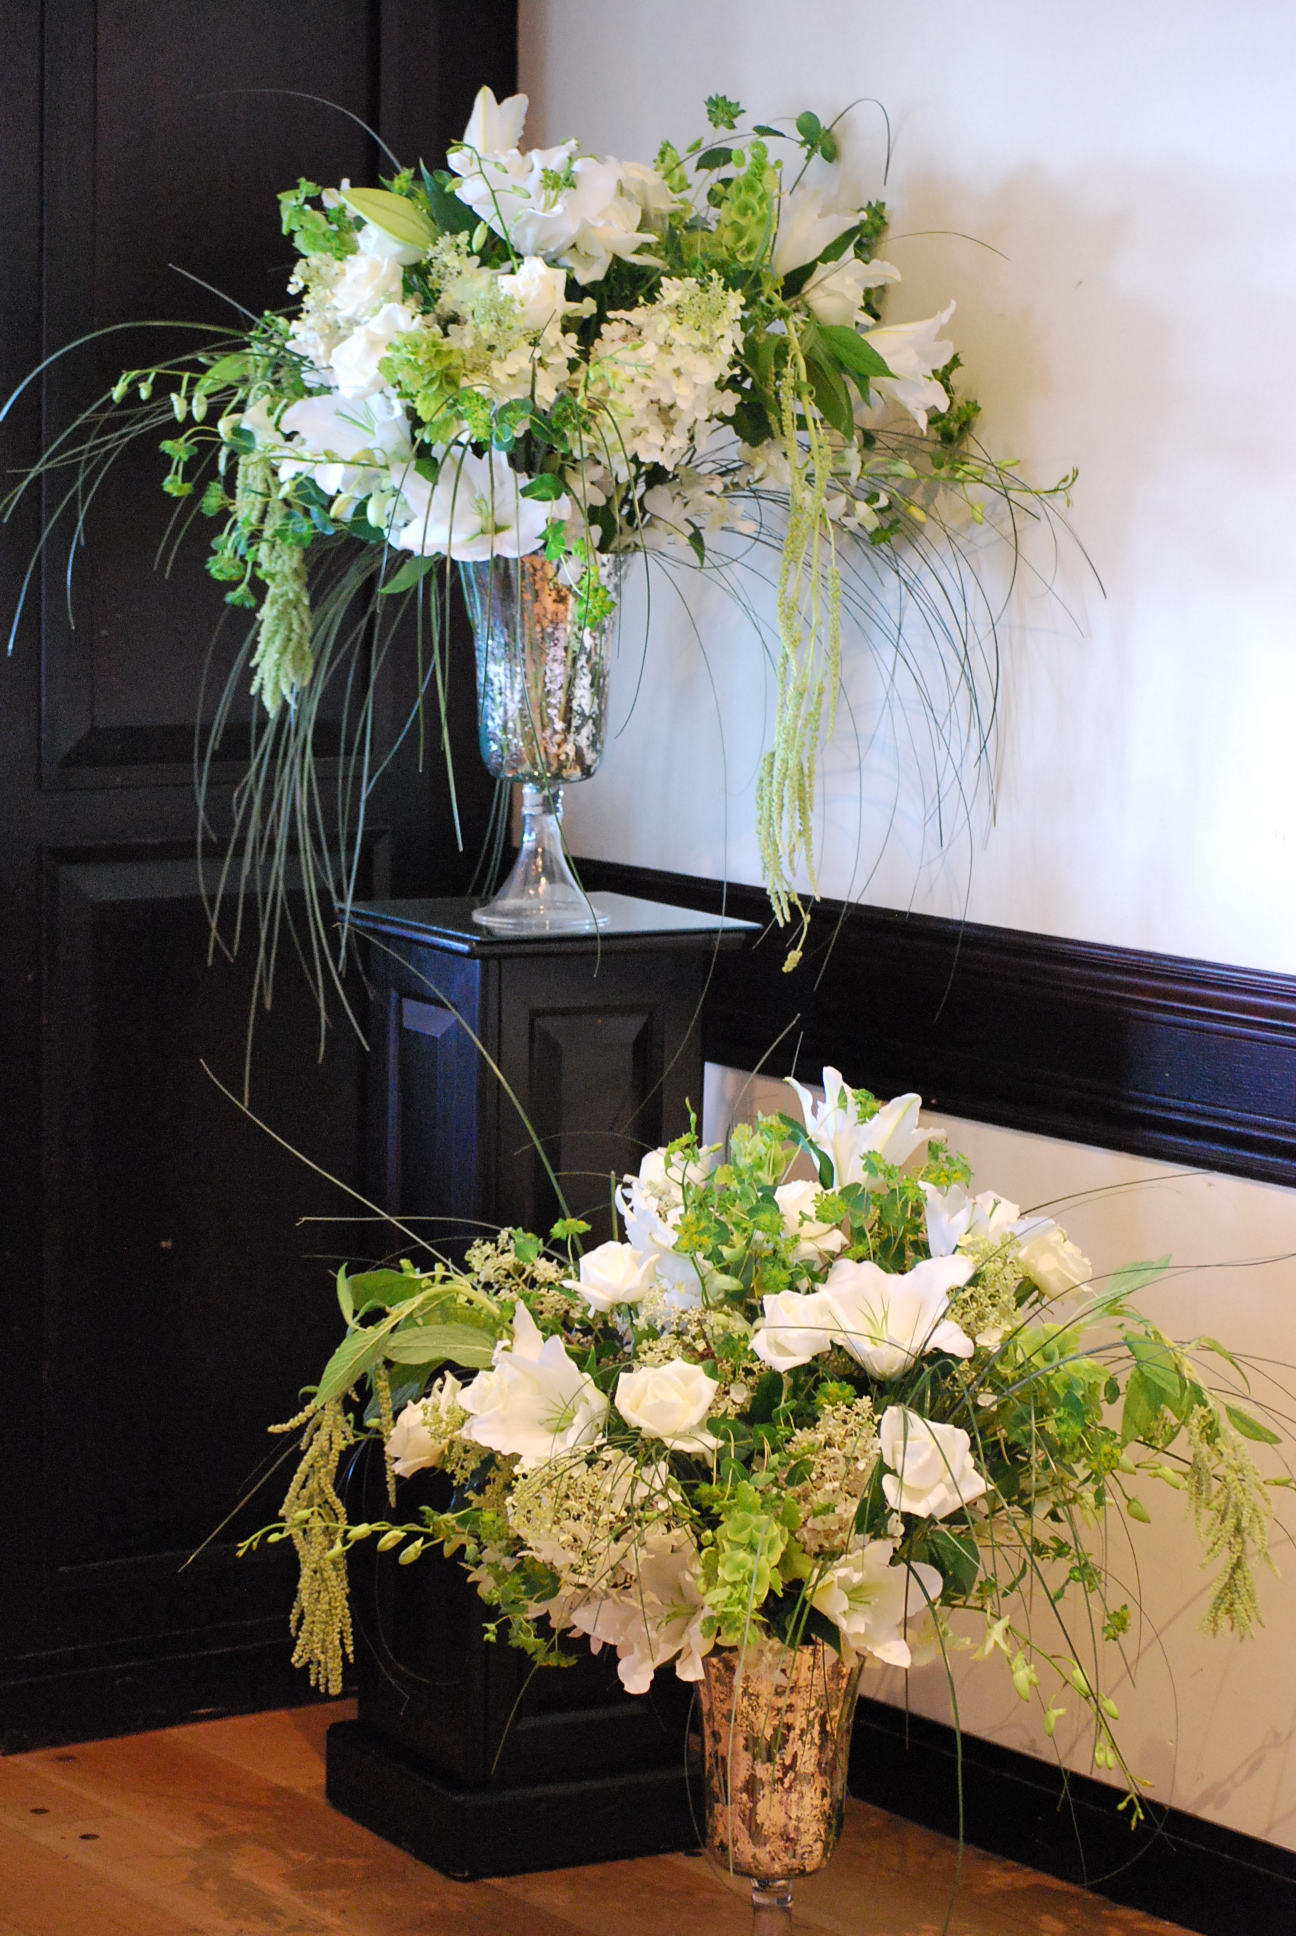 Large arrangements for Main Alters by Floral Design by Lili, Lower Mainland, B.C. Wedding Florist